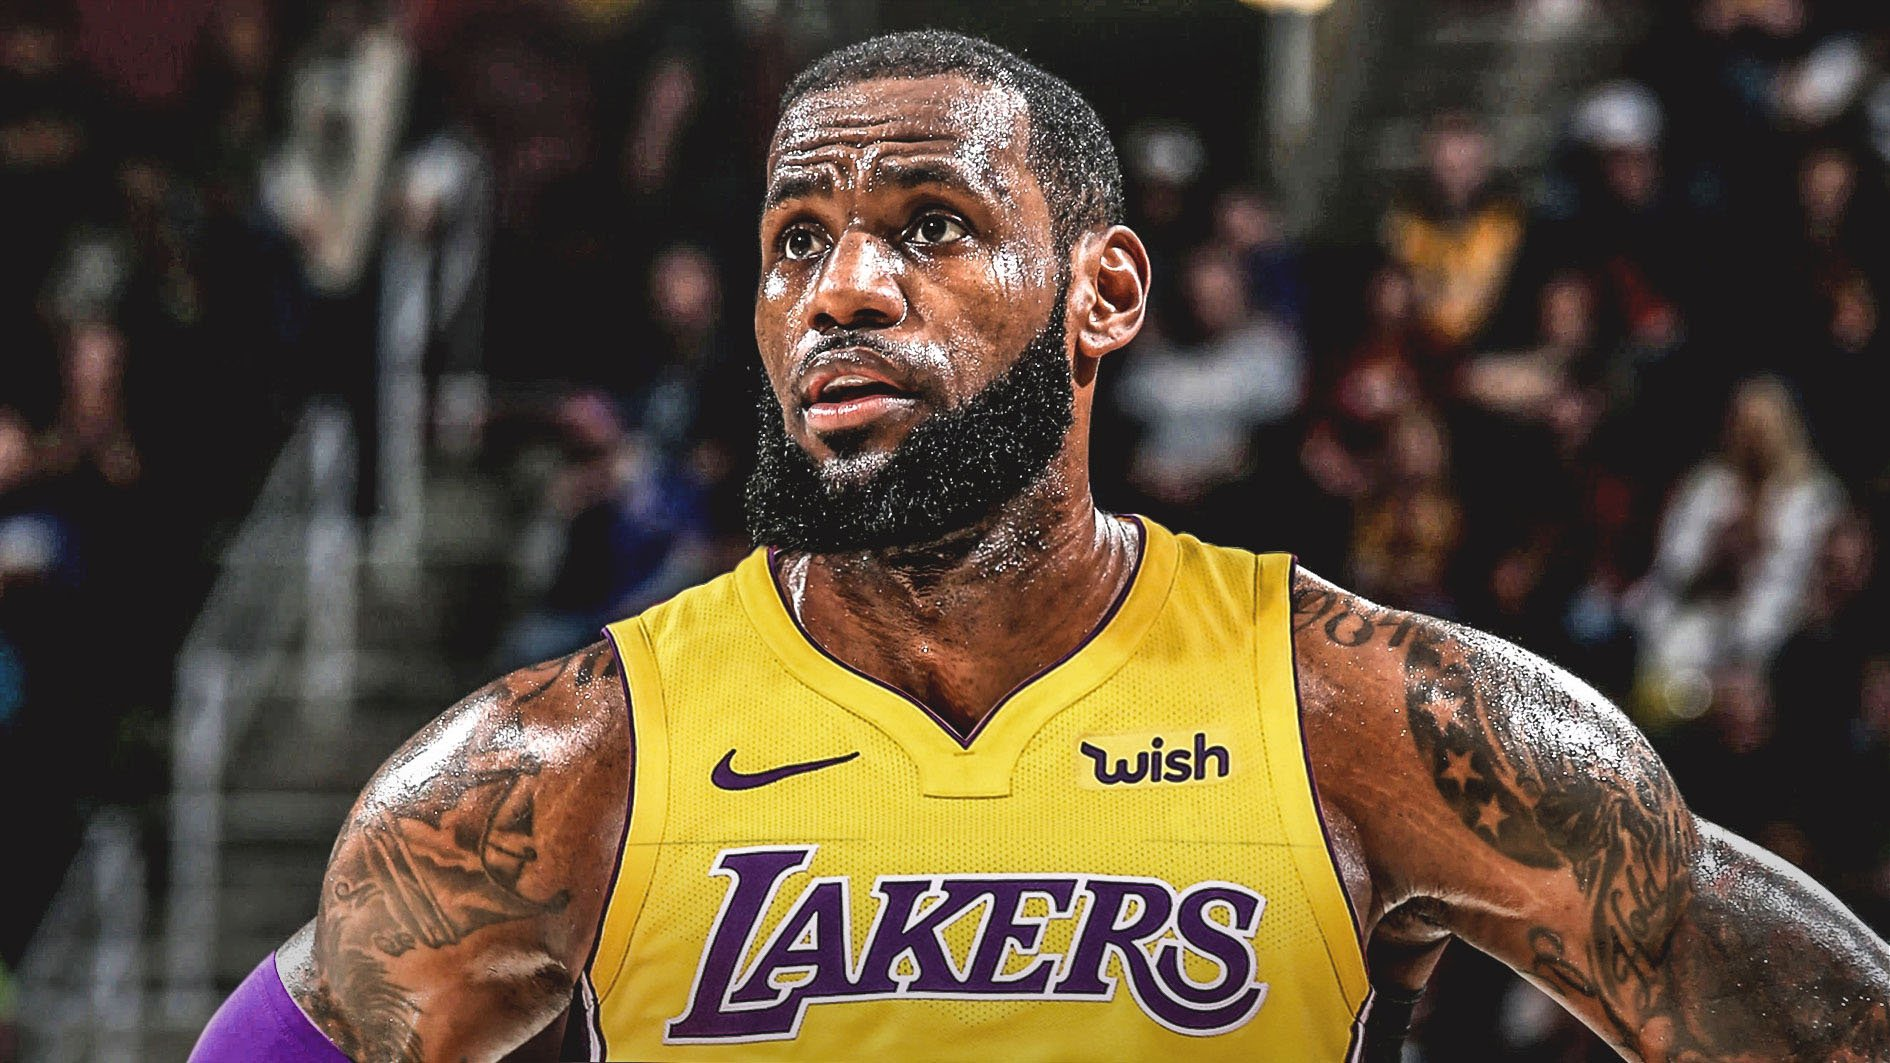 Los Angeles Lakers Ink Deal With LeBron James For A four-Year, $153.3 Million-HustleTV.tv-DJHustle